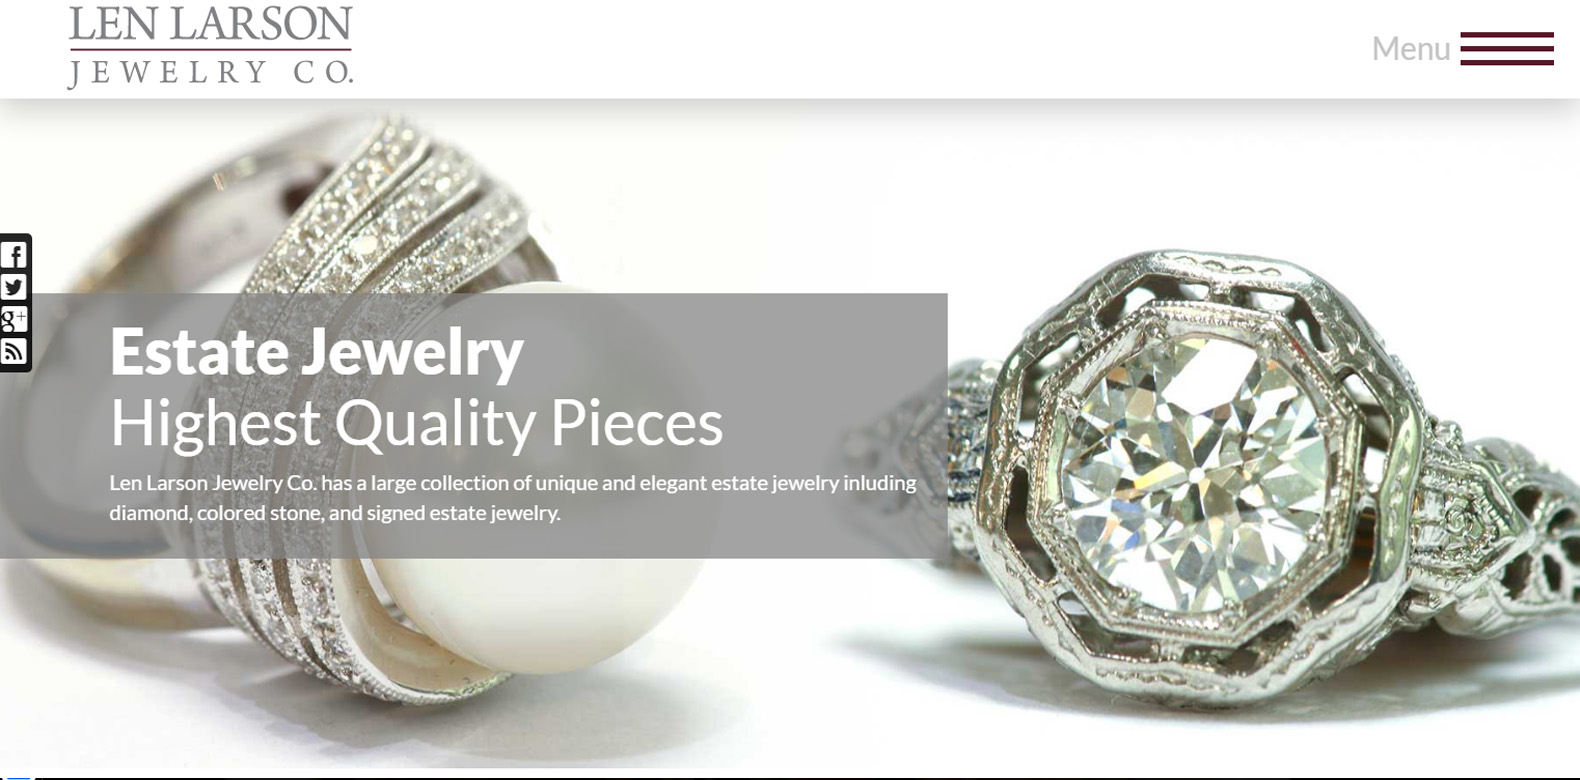 New Upgrade Launched: Len Larson Jewelry